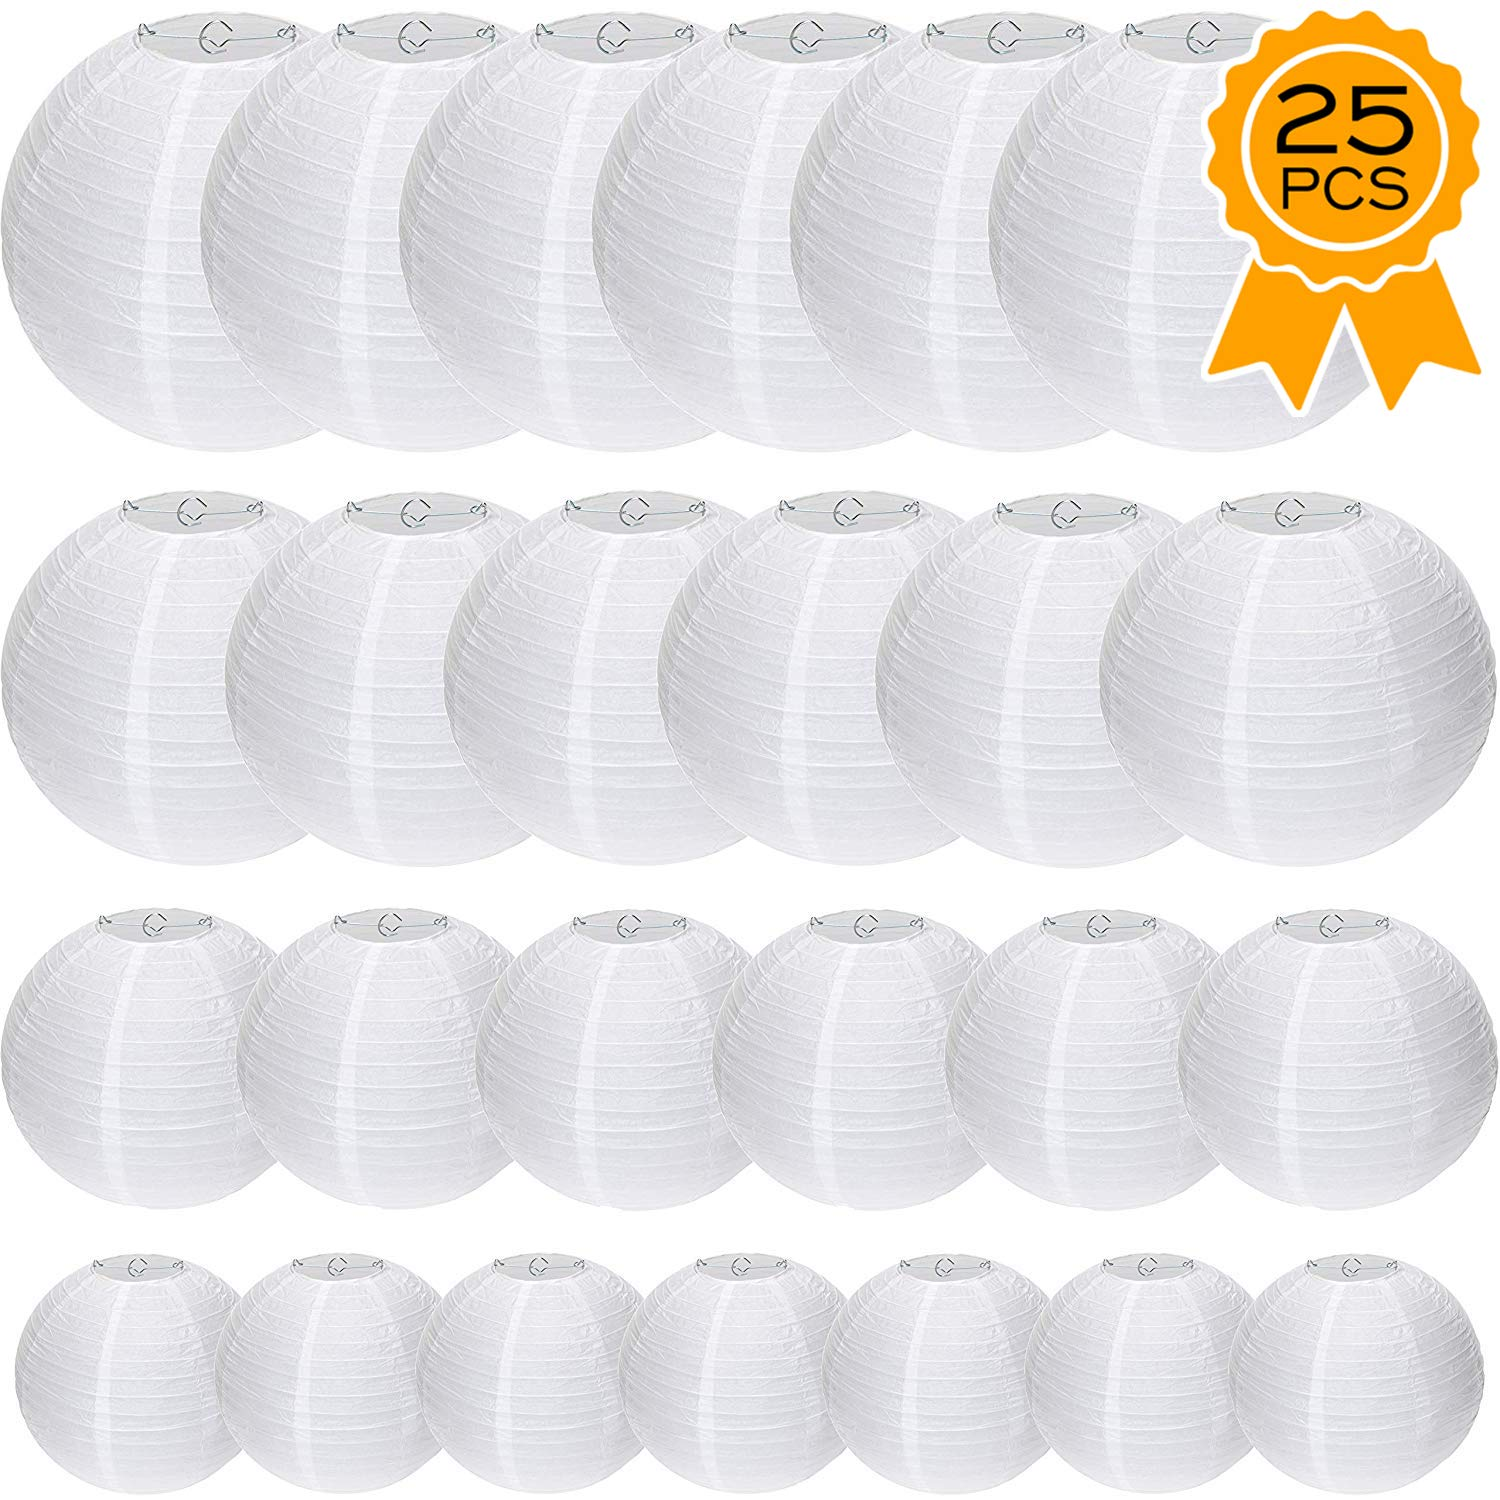 Special Feelings 25 Pack White Paper Lanterns Set (Assorted Sizes of 6, 8, 10, 12 Inch) for Weddings Birthday Parties, Baby Showers, Classroom Decoration and More and More,